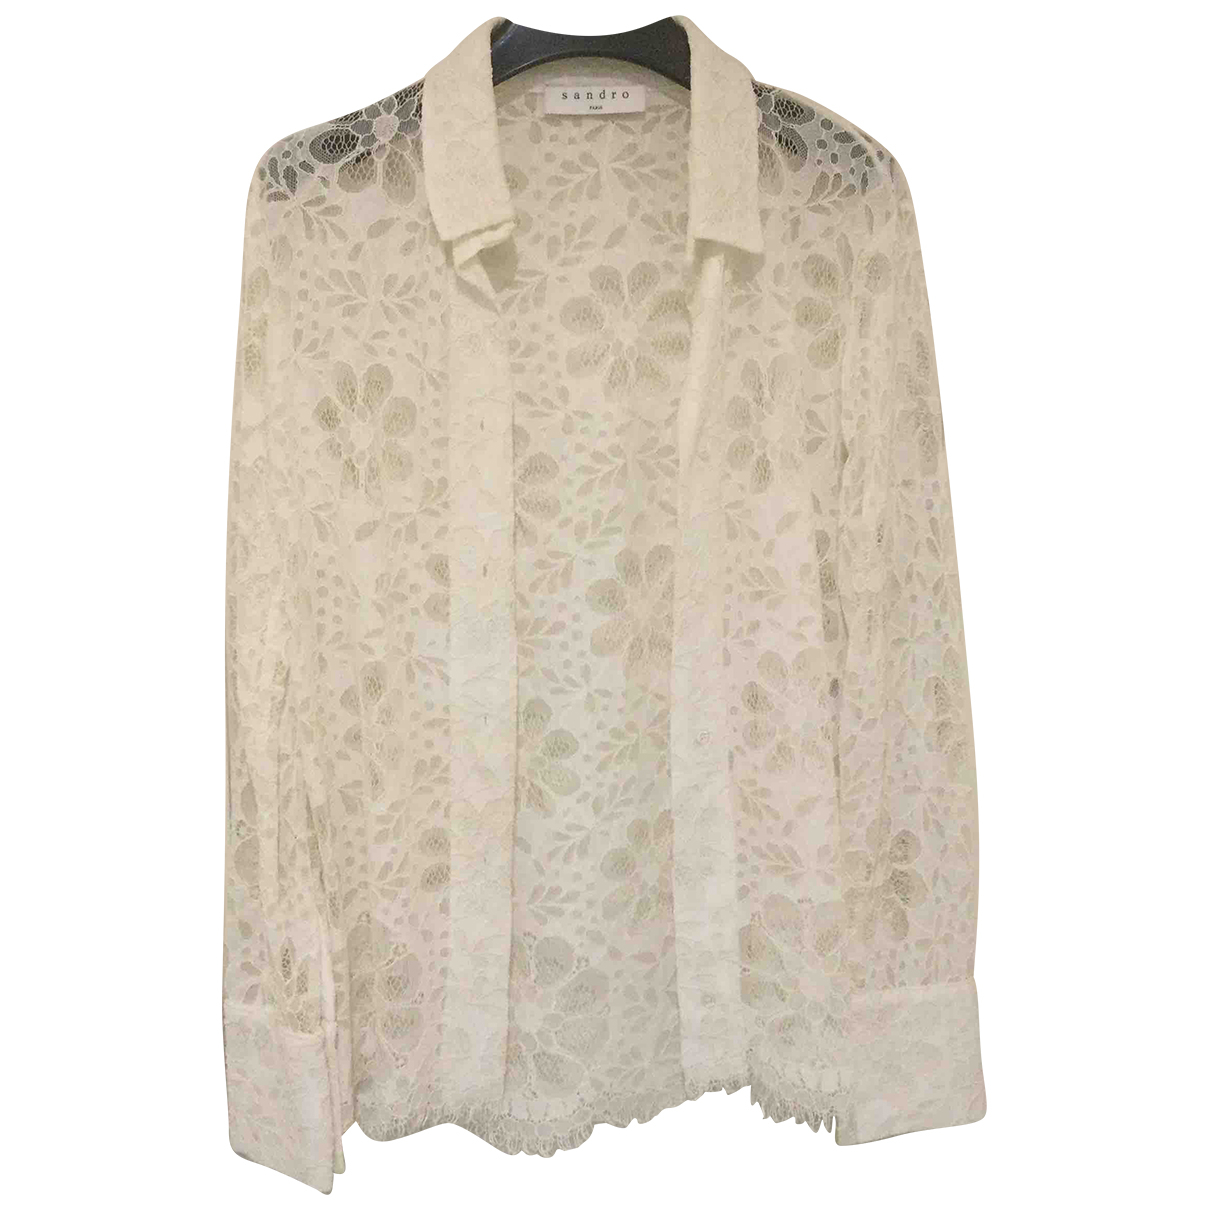 Sandro N White Lace  top for Women 1 0-5